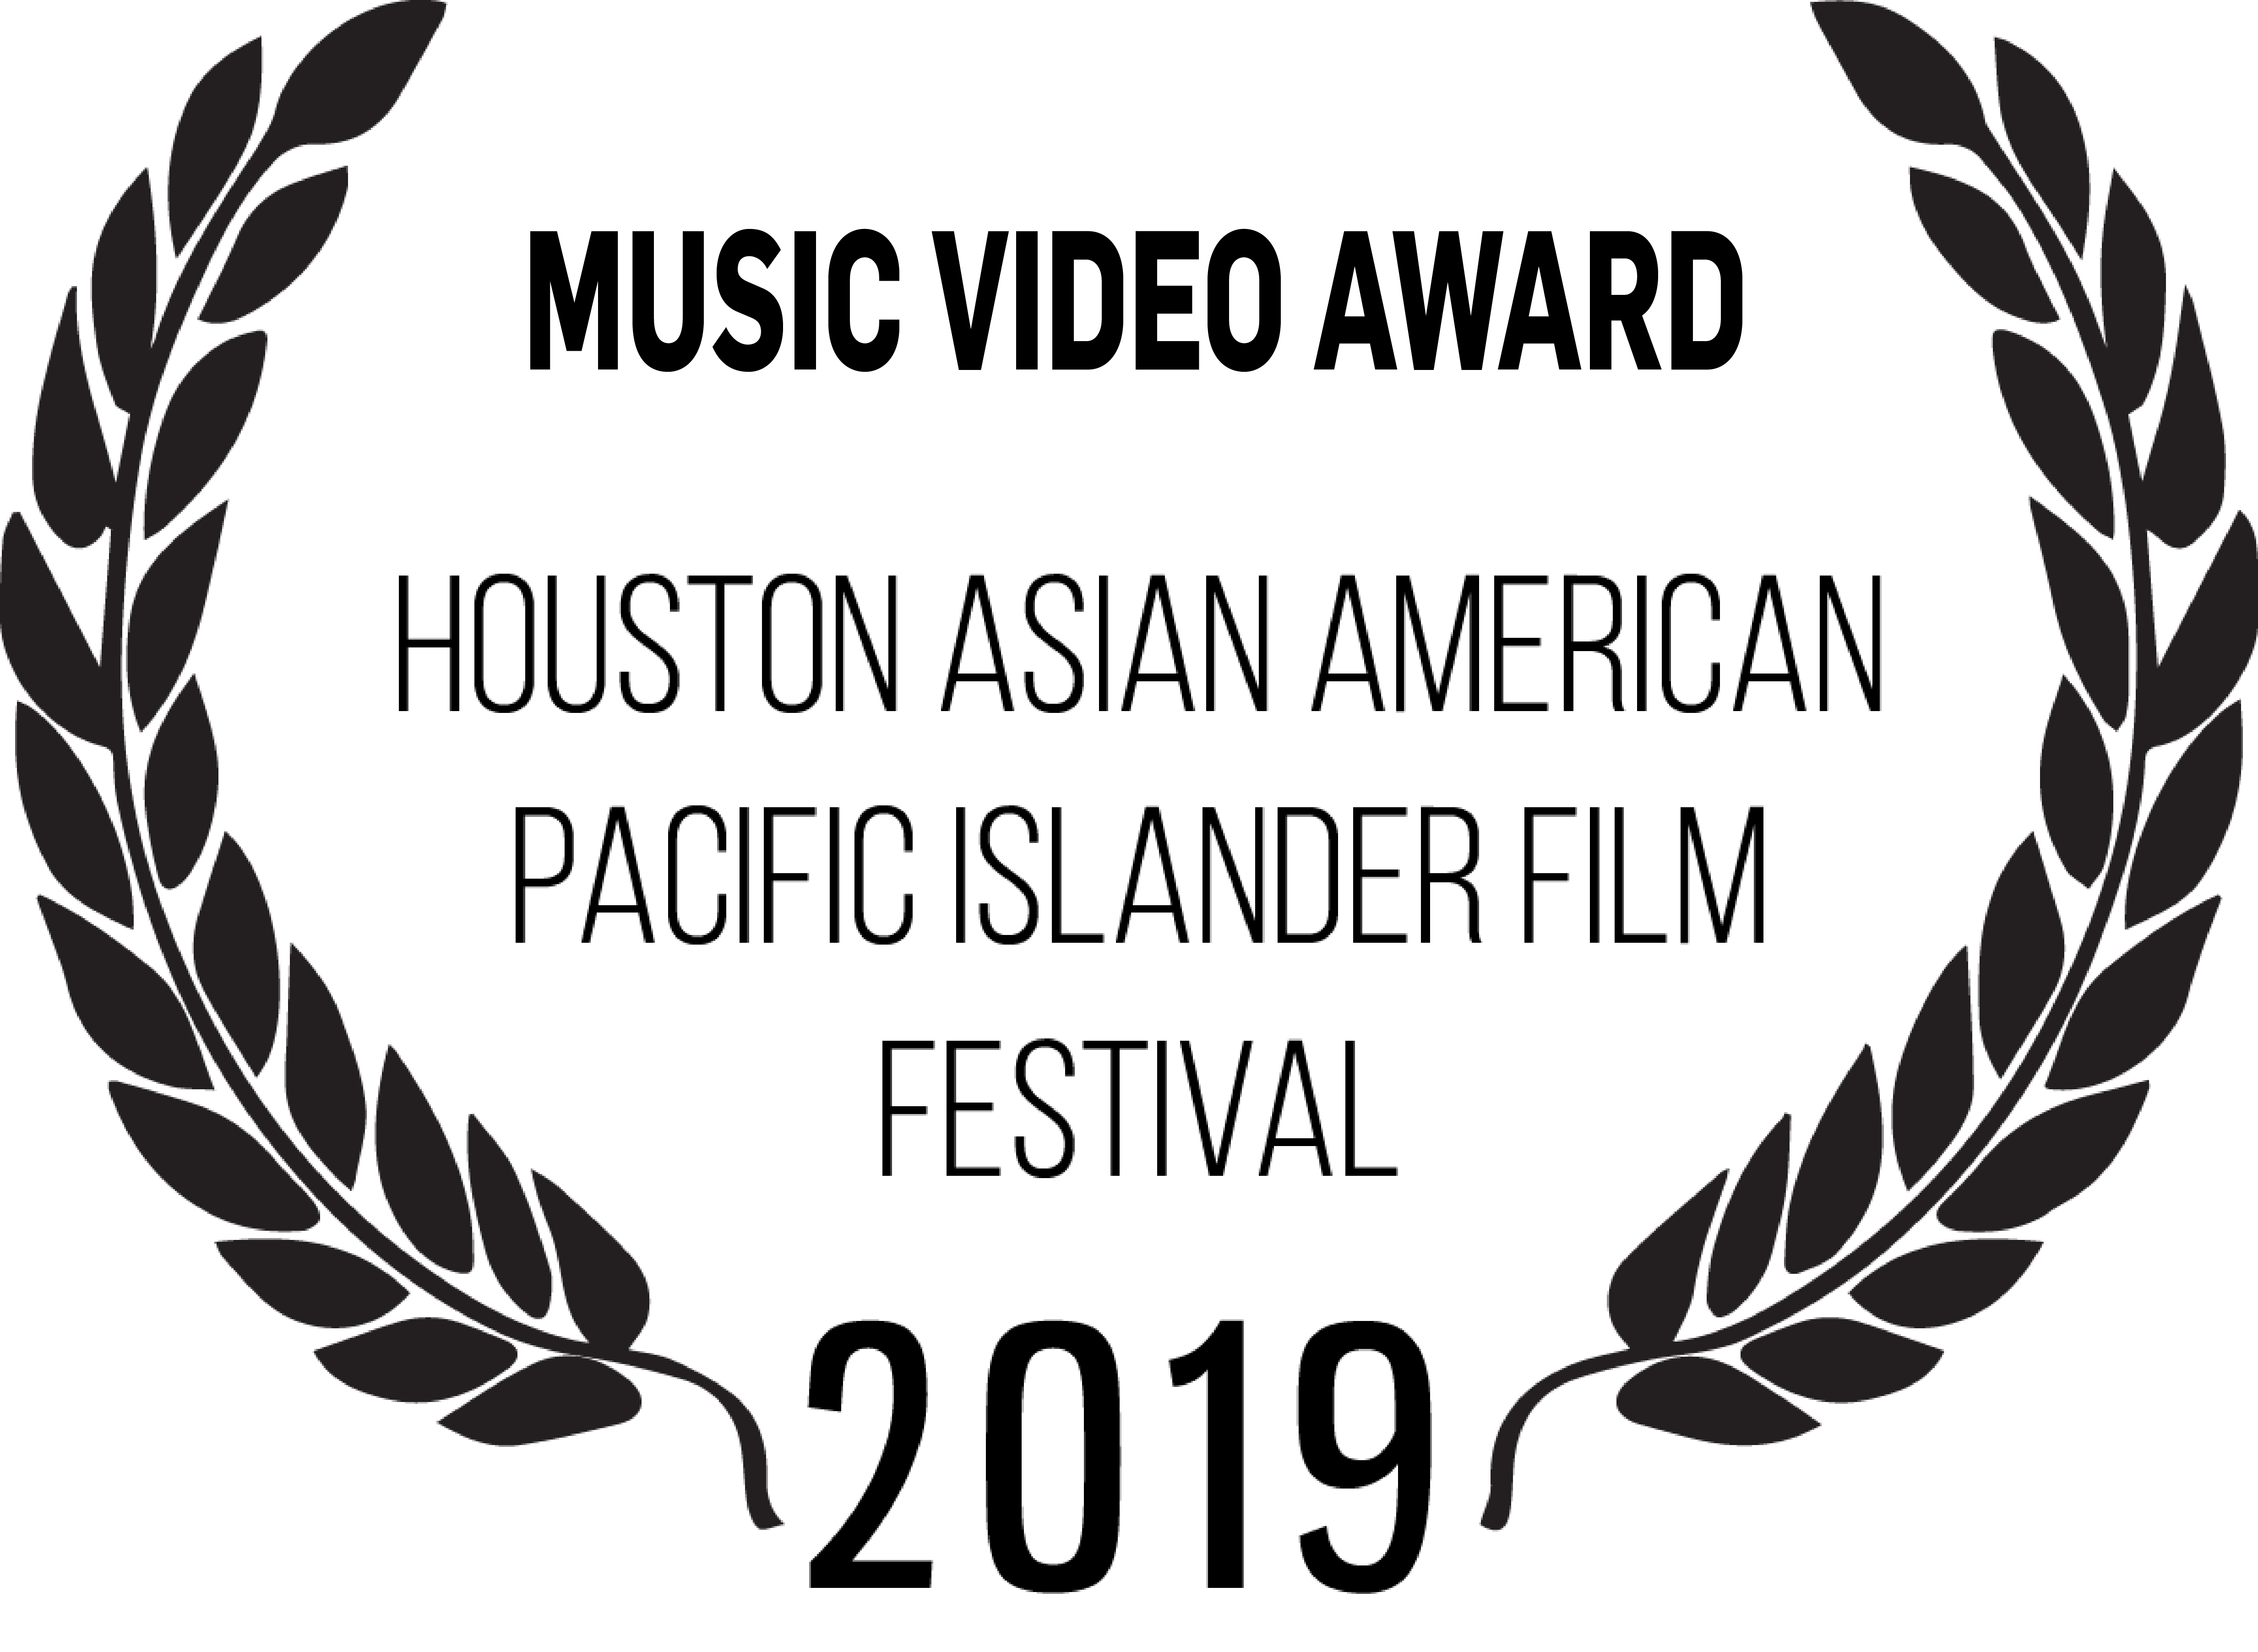 Houston Asian American Pacific Islander Film Festival music video 2019